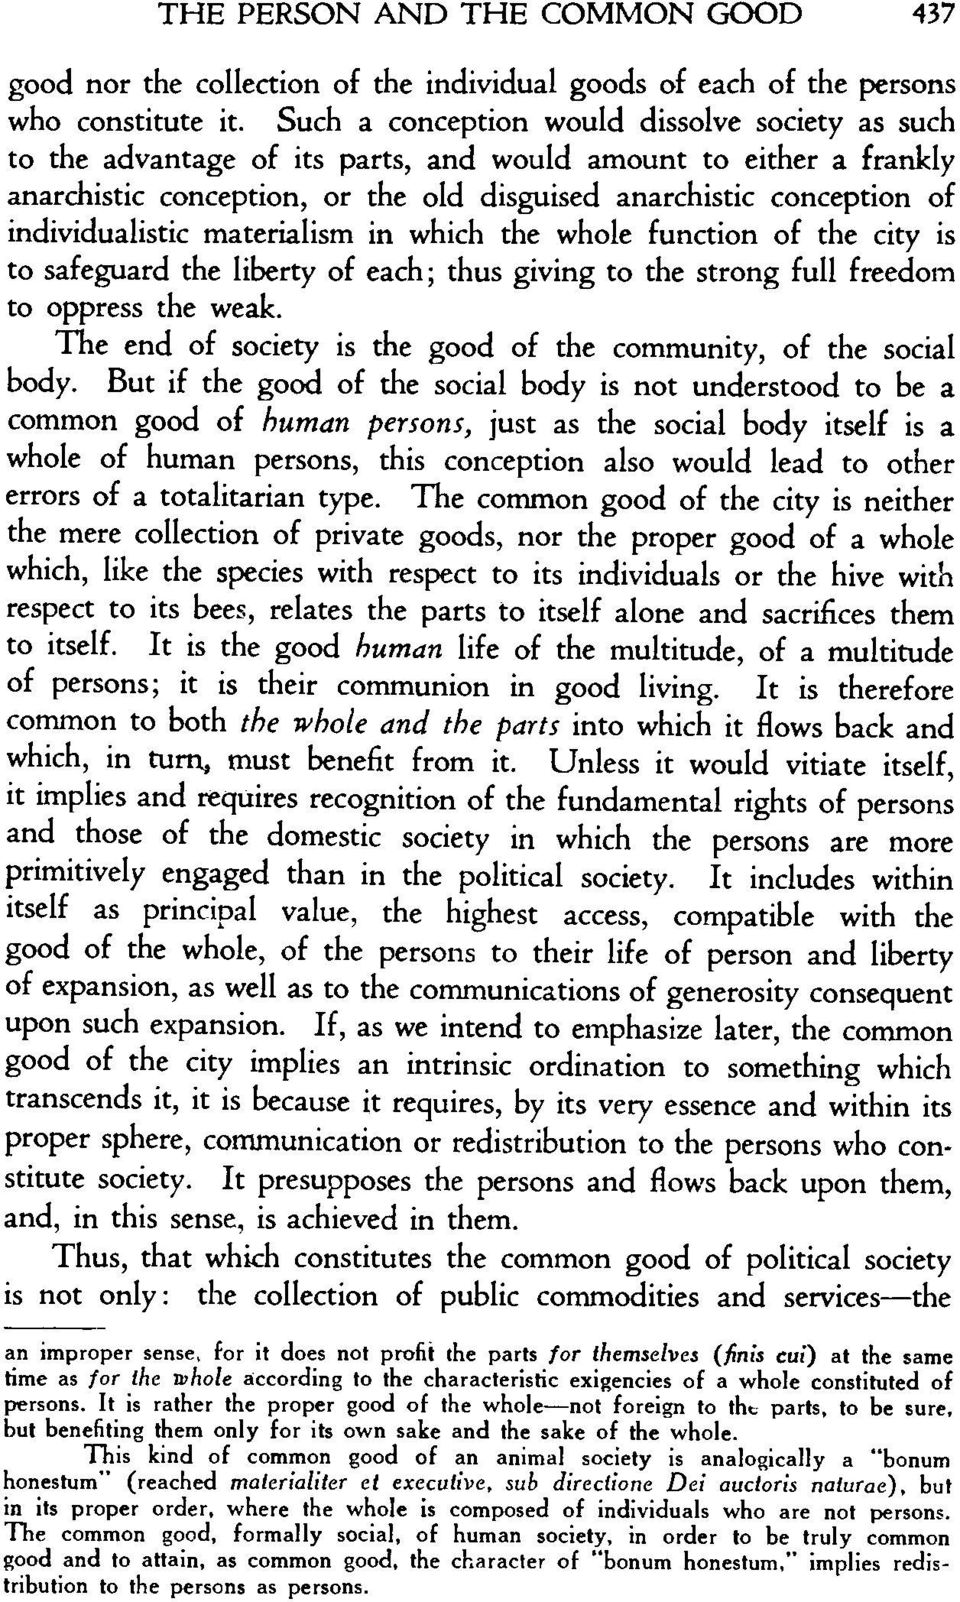 individualistic materialism in which the whole function of the city is to safeguard the liberty of each; thus giving to the strong full freedom to oppress the weak.